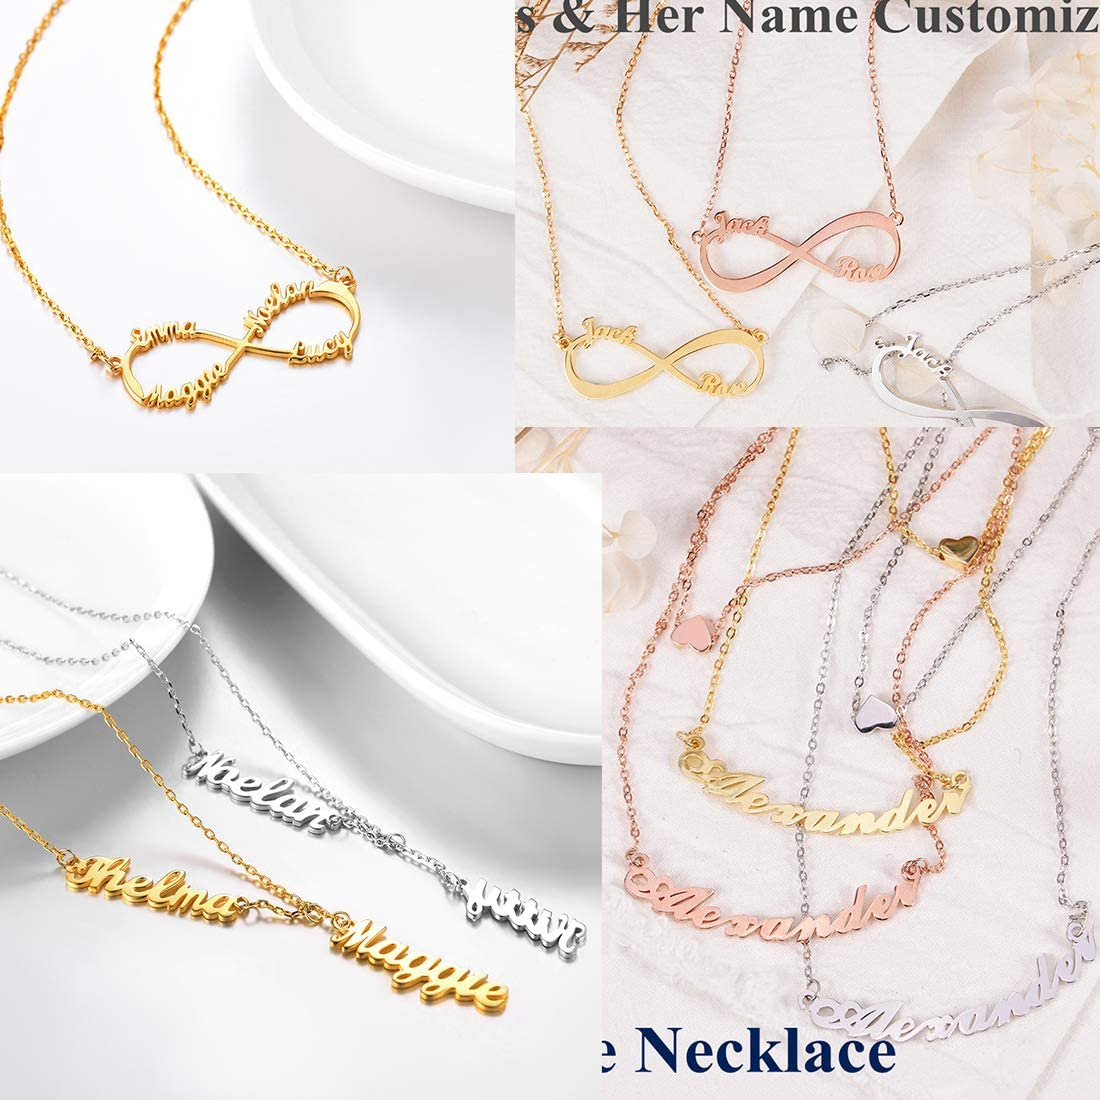 18K Gold Custom Any Name//Her Name//Double Names//Infinity 4 Family or BFF Names U7 Personalized Necklace Choker Charm Initials Naming Jewelry Platinum Chain 16-18